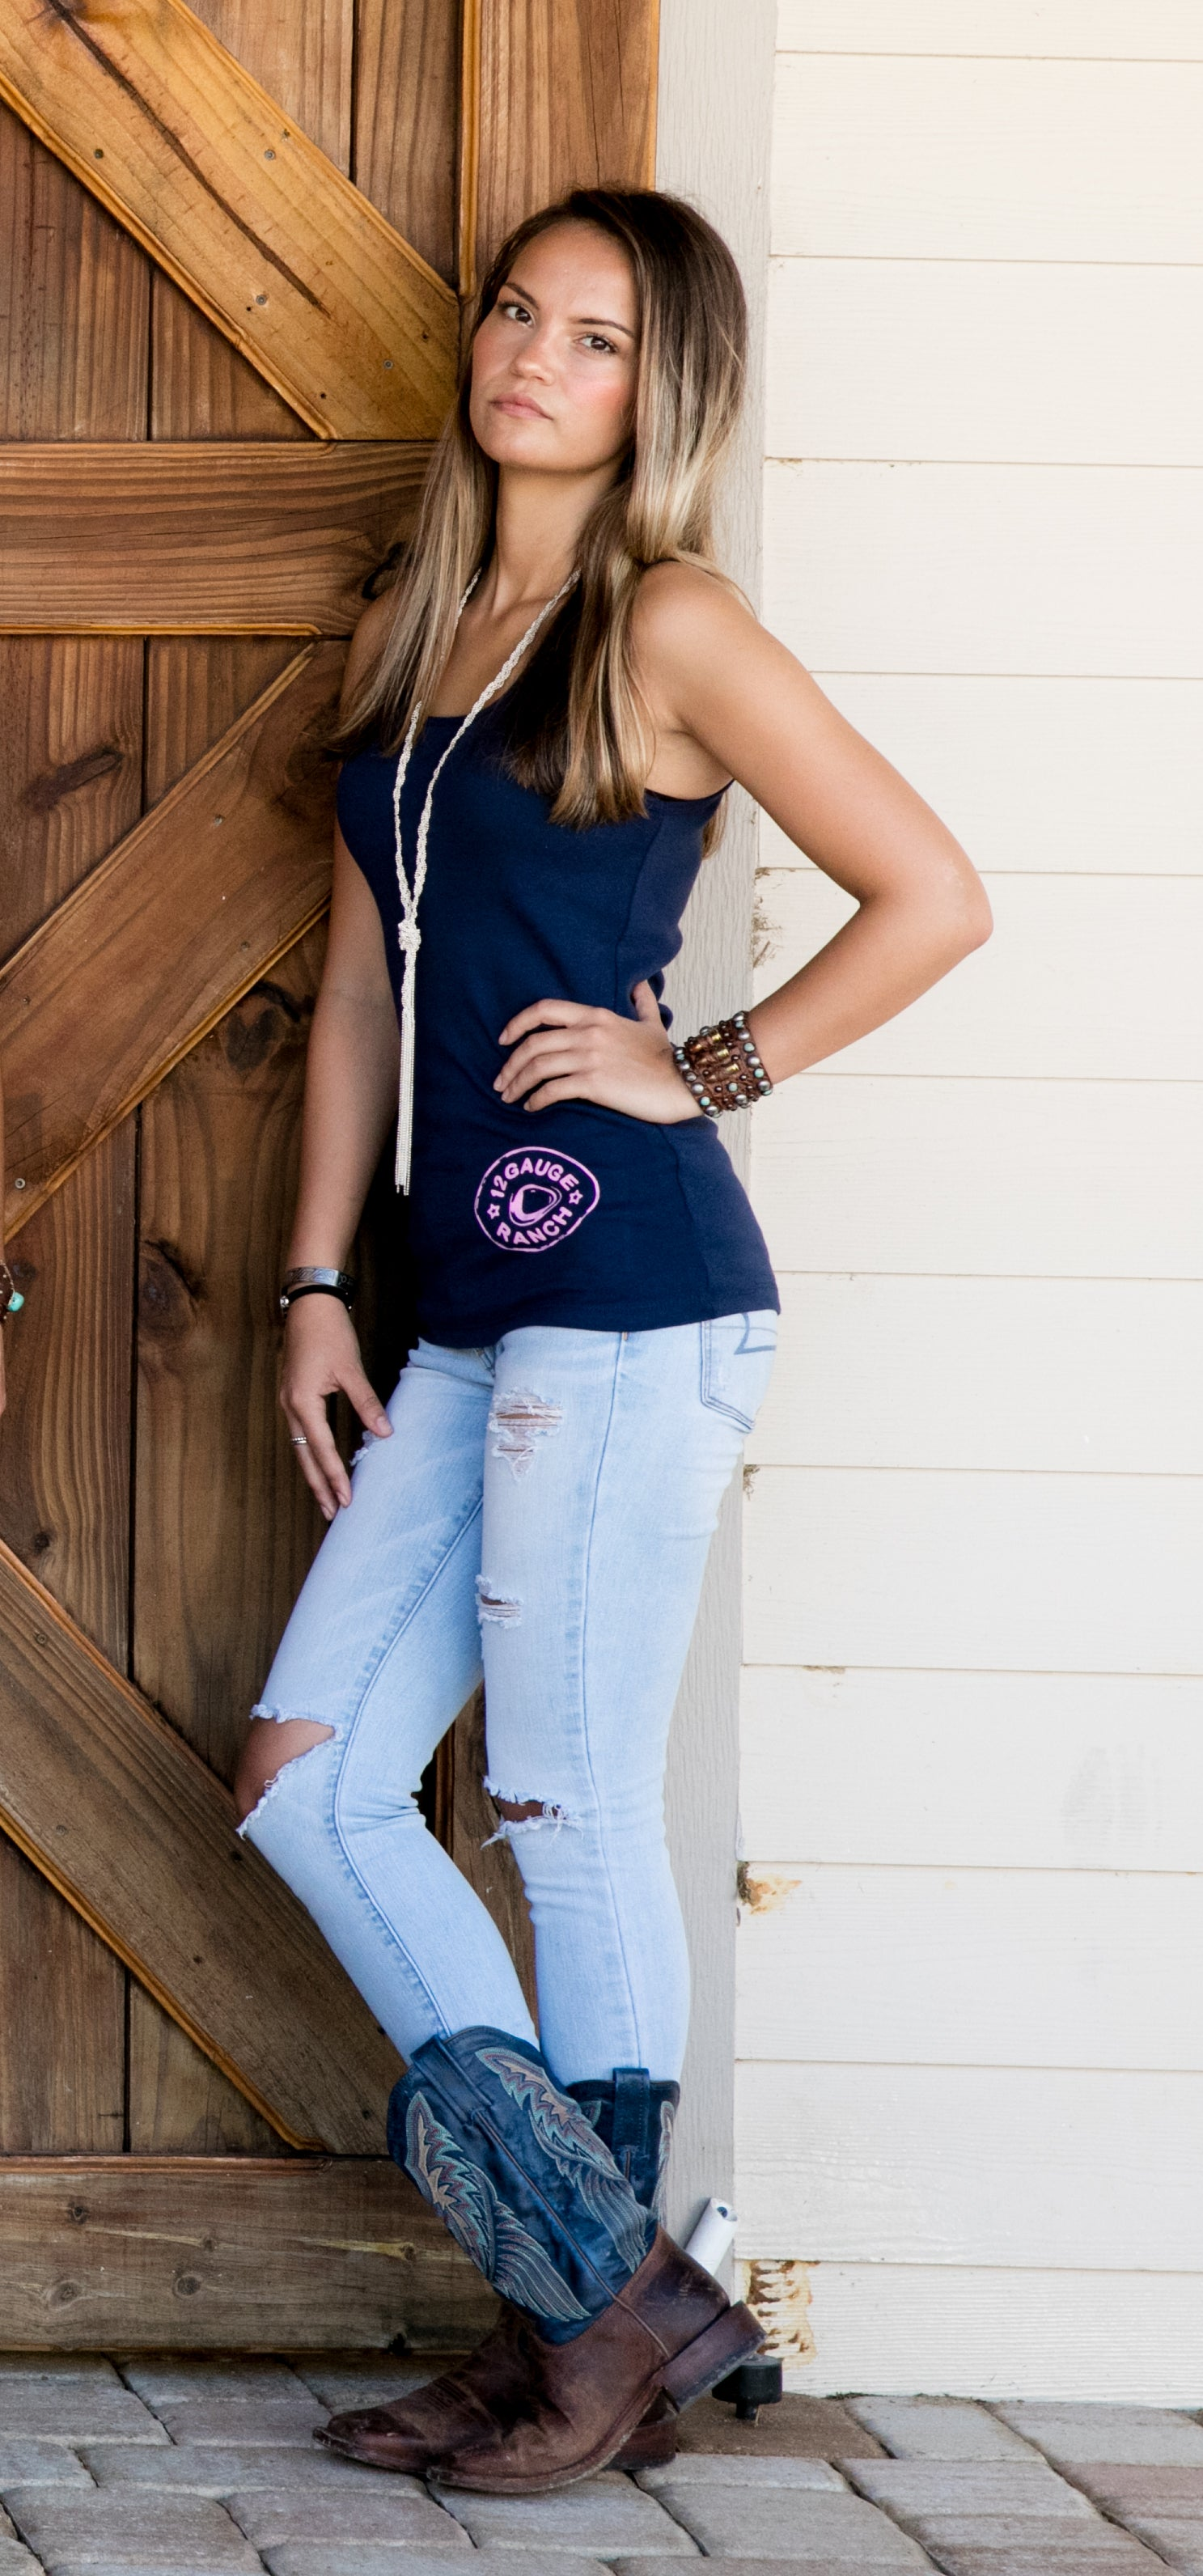 12 Gauge Ranch Women's Navy Tank Top With Pink Logo (TKWNY102), Accessories, 12 Gauge Ranch, 12 Gauge Ranch Ranch  12 Gauge Ranch